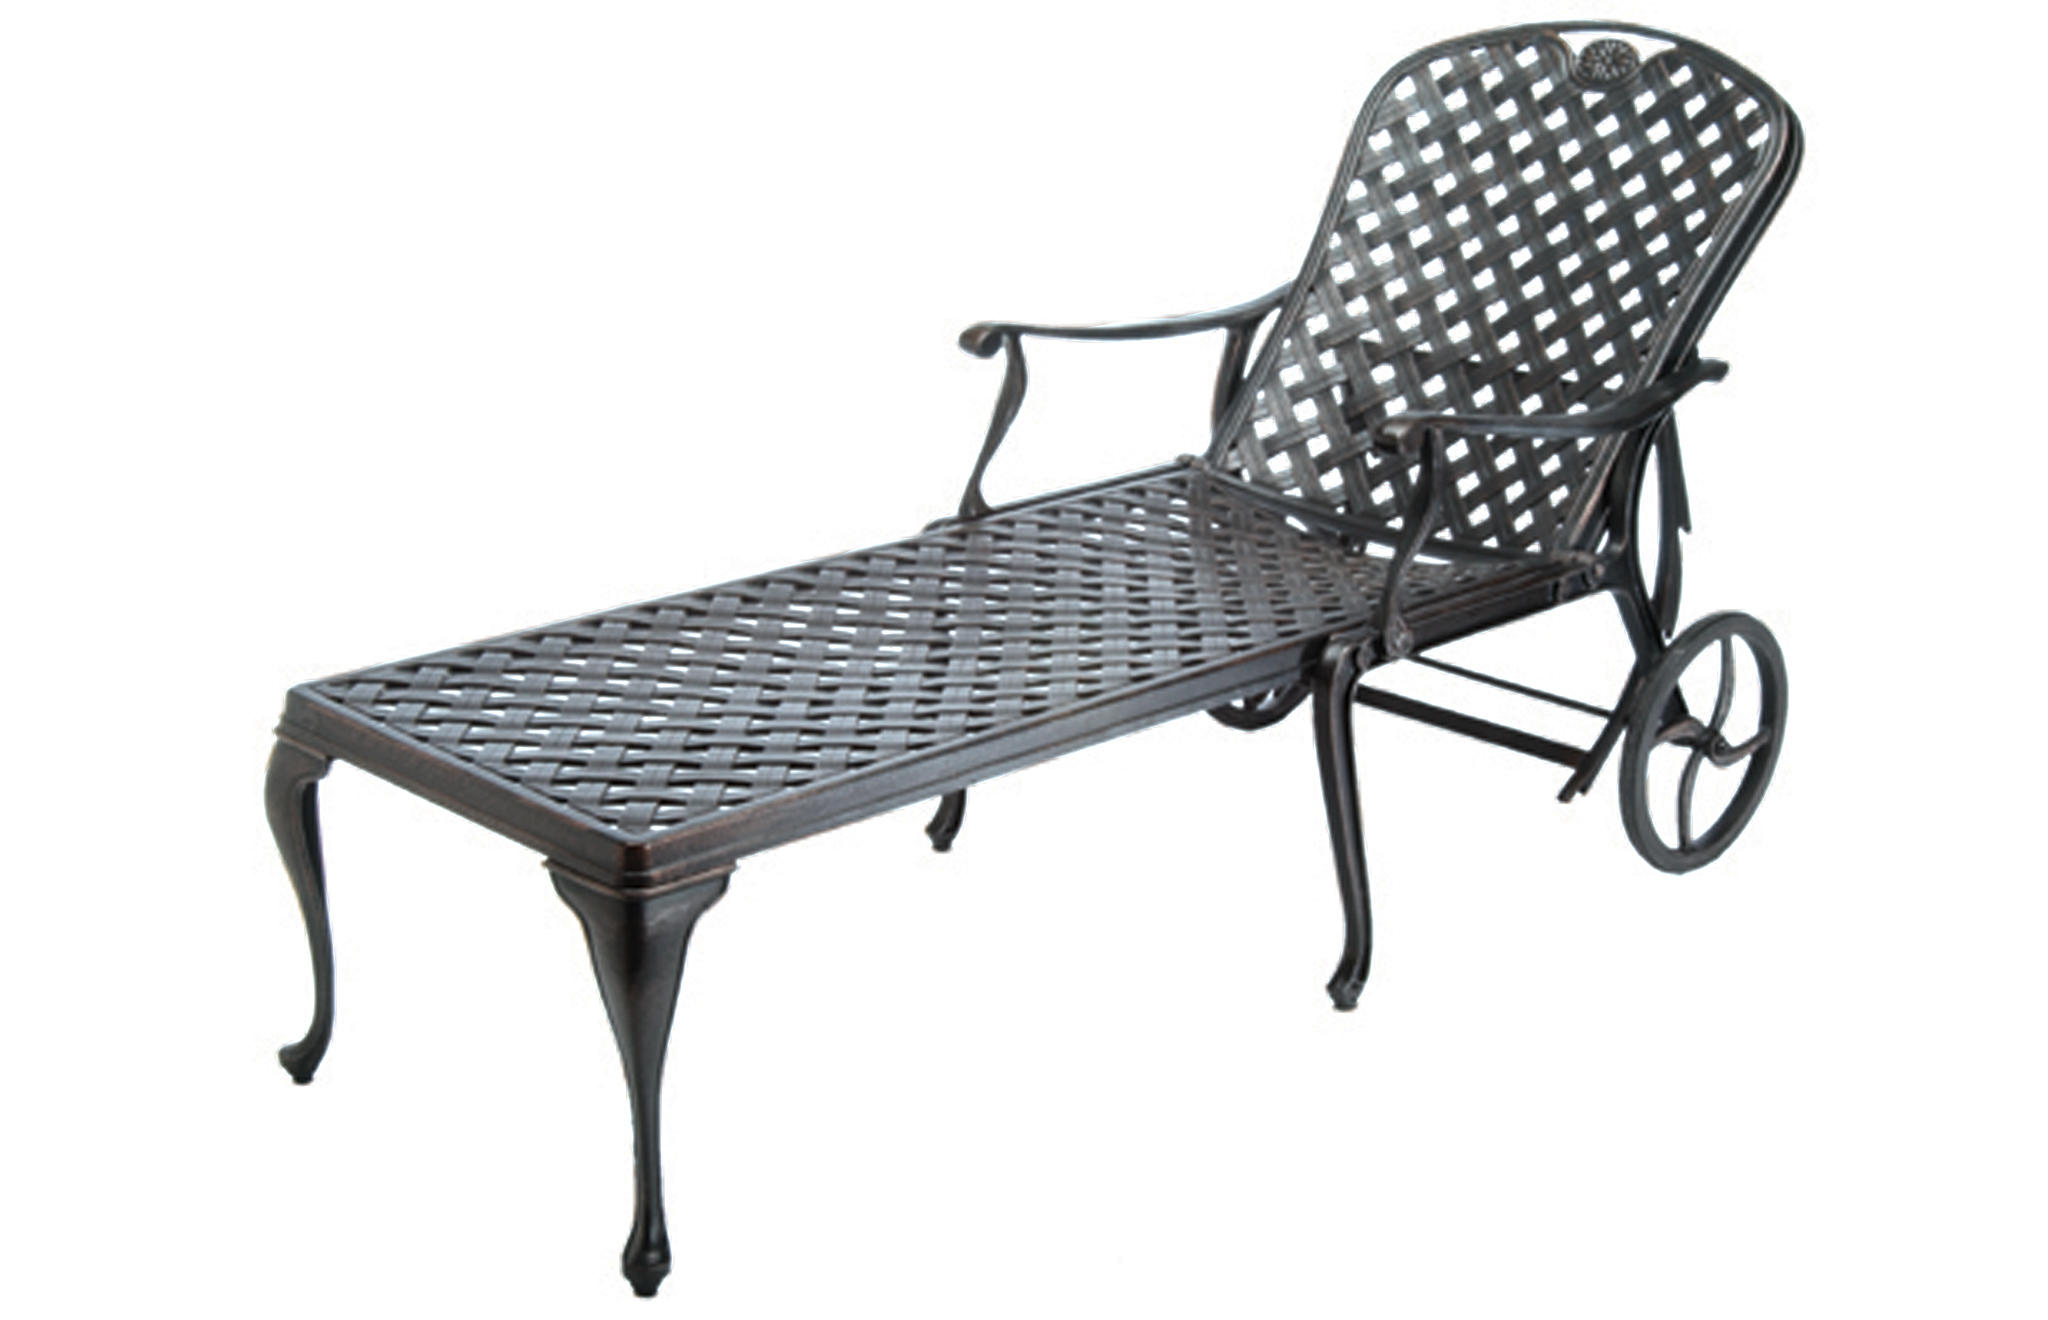 iron chaise lounge chairs lawn chair usa promotion code fall: the best season for entertaining with outdoor furniture | summer classics